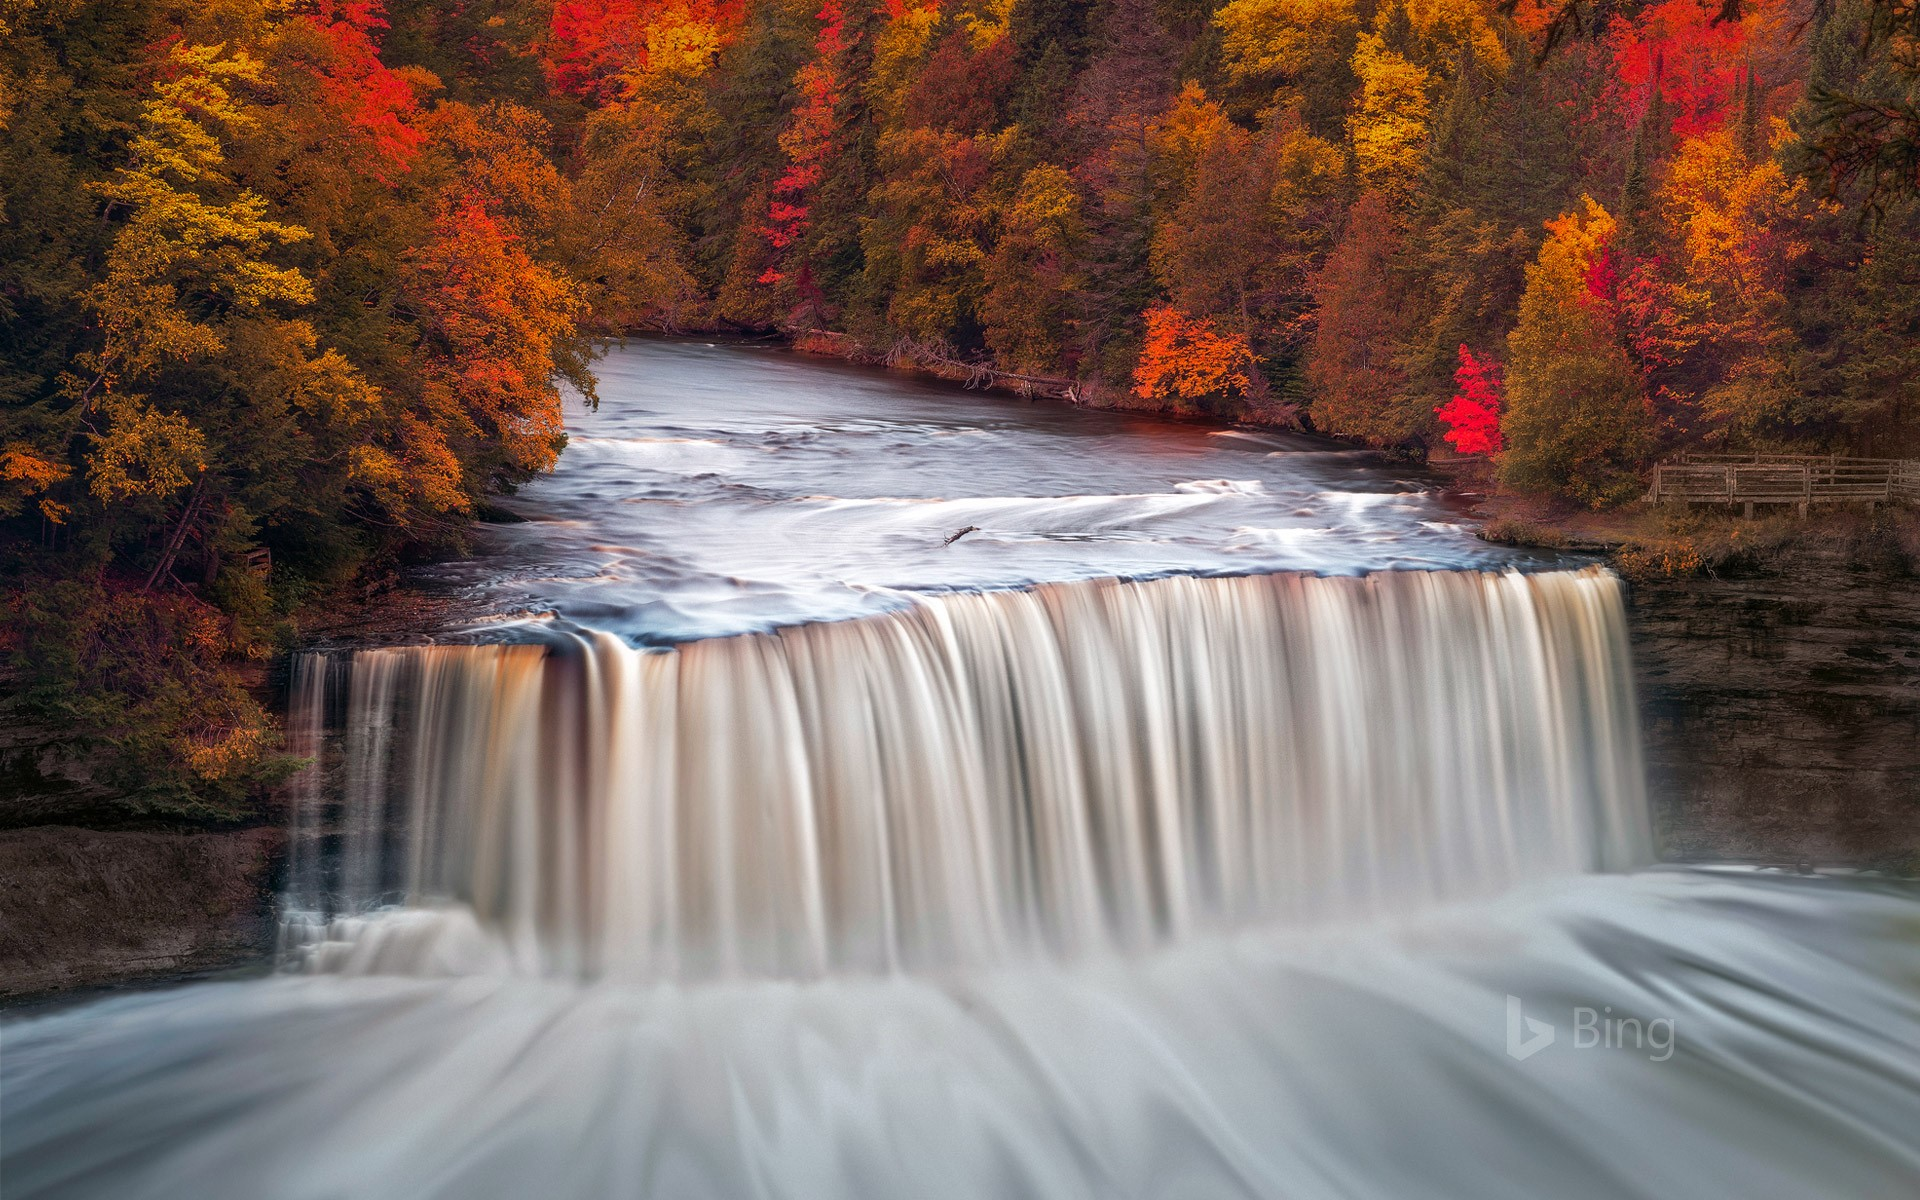 Upper Tahquamenon Falls in Tahquamenon Falls State Park, Michigan, USA